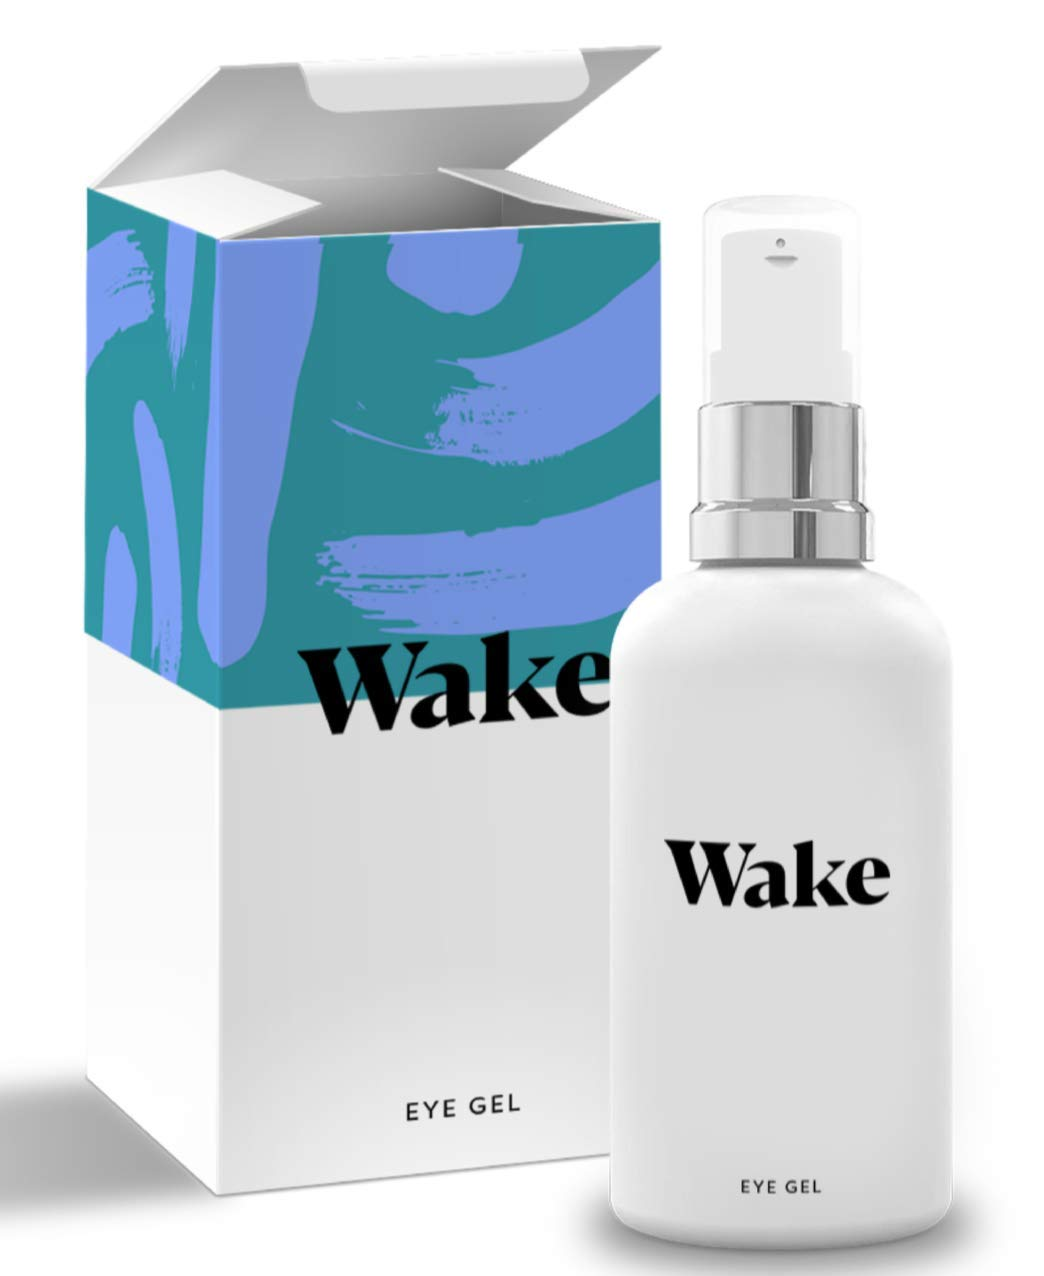 Wake Skincare Eye Gel - Hydrating Eye Serum for Puffy Eyes, Dark Circles, Eye Bags, Crows Feet and Wrinkles – Vitamin E – Collagen - 30ml Anti Ageing Eye Cream (1 Pack)